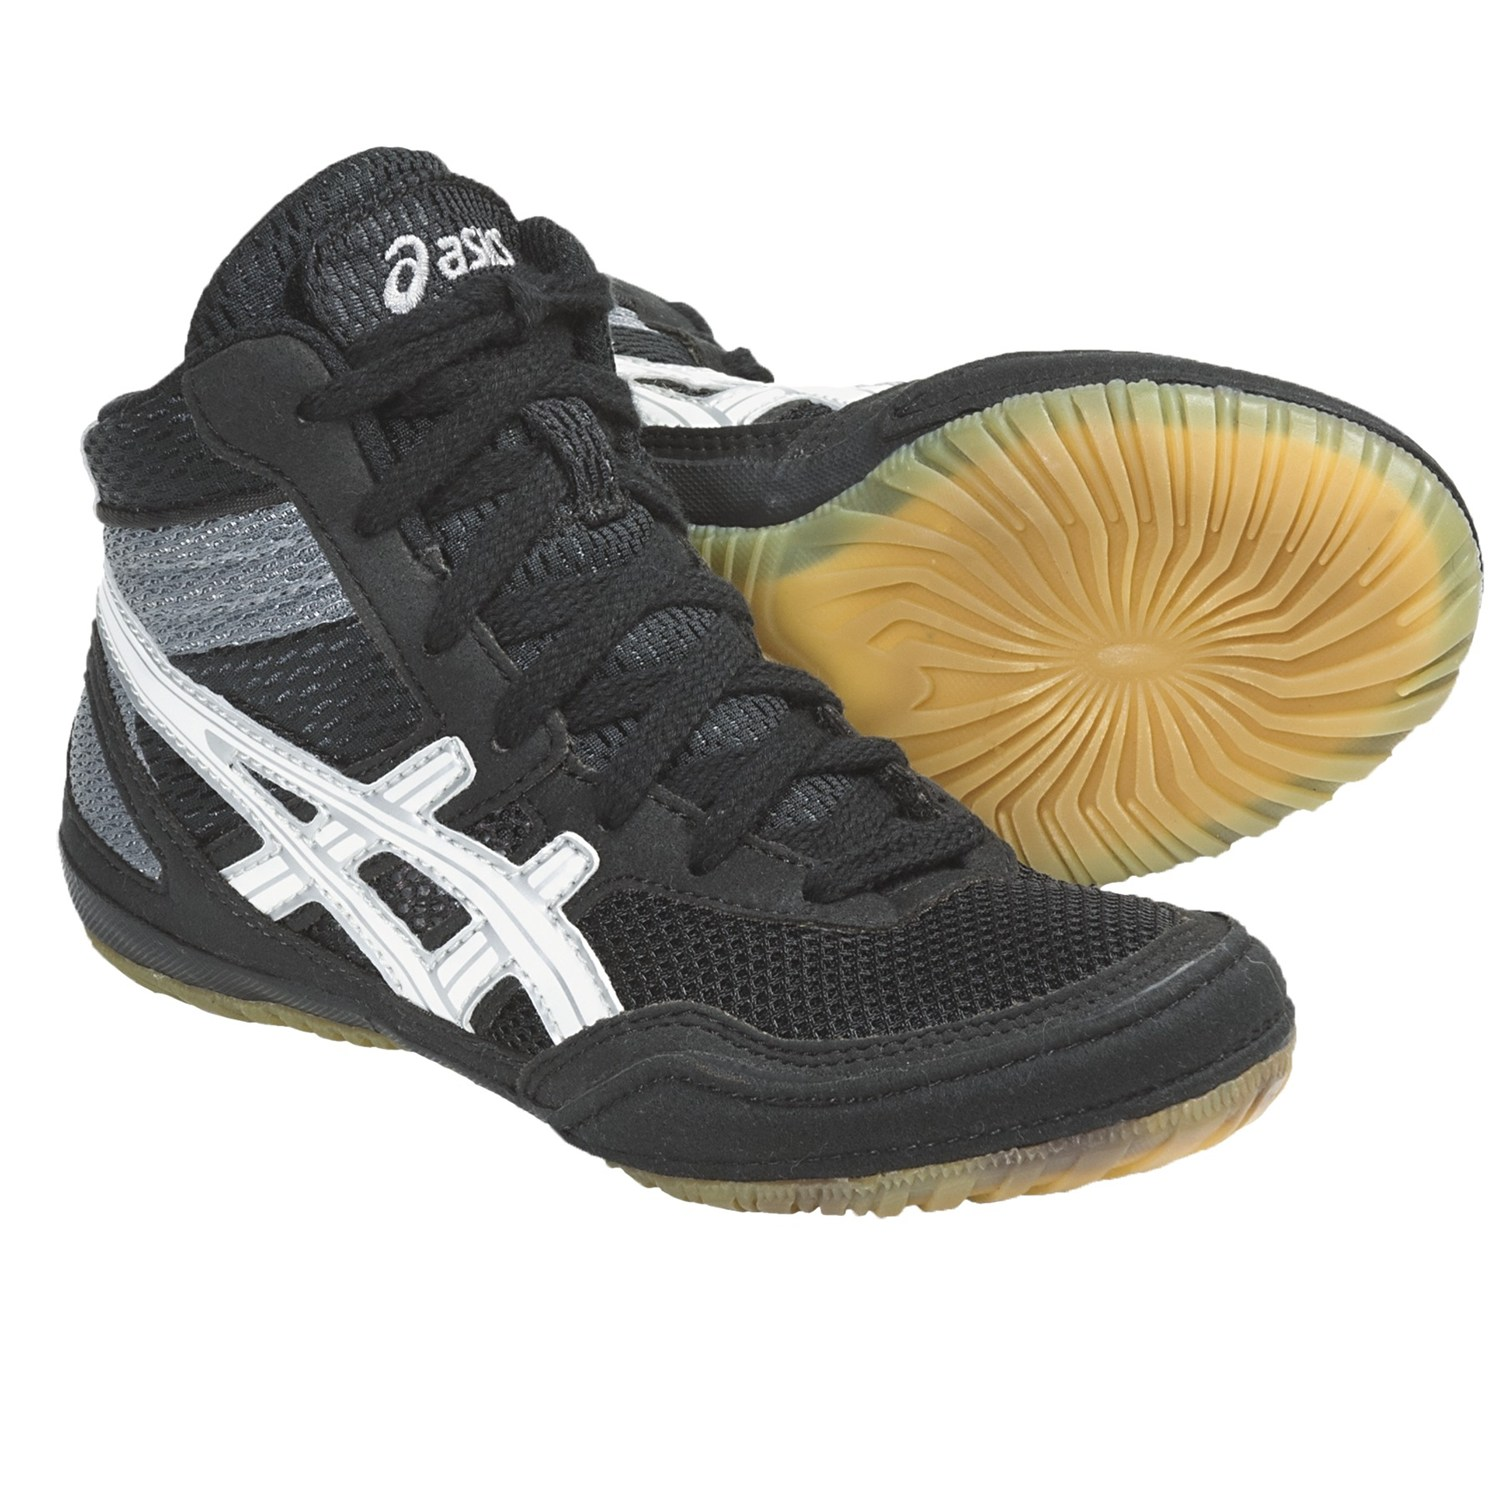 asics matflex 3 gs youth wrestling shoes